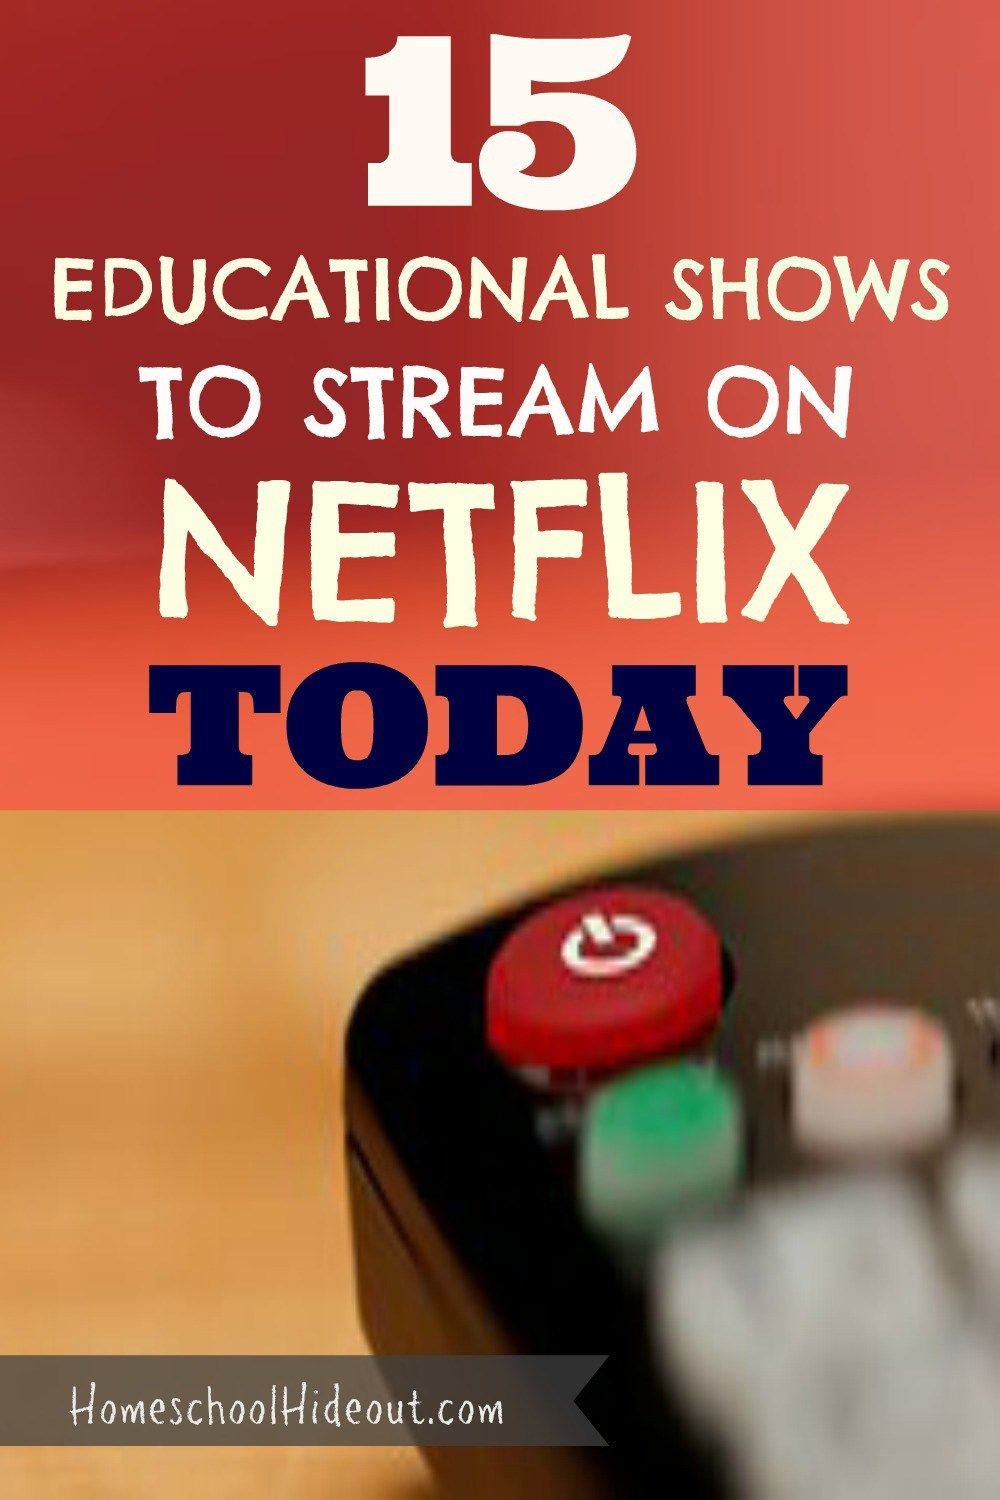 15 Educational Shows to Stream on Netflix